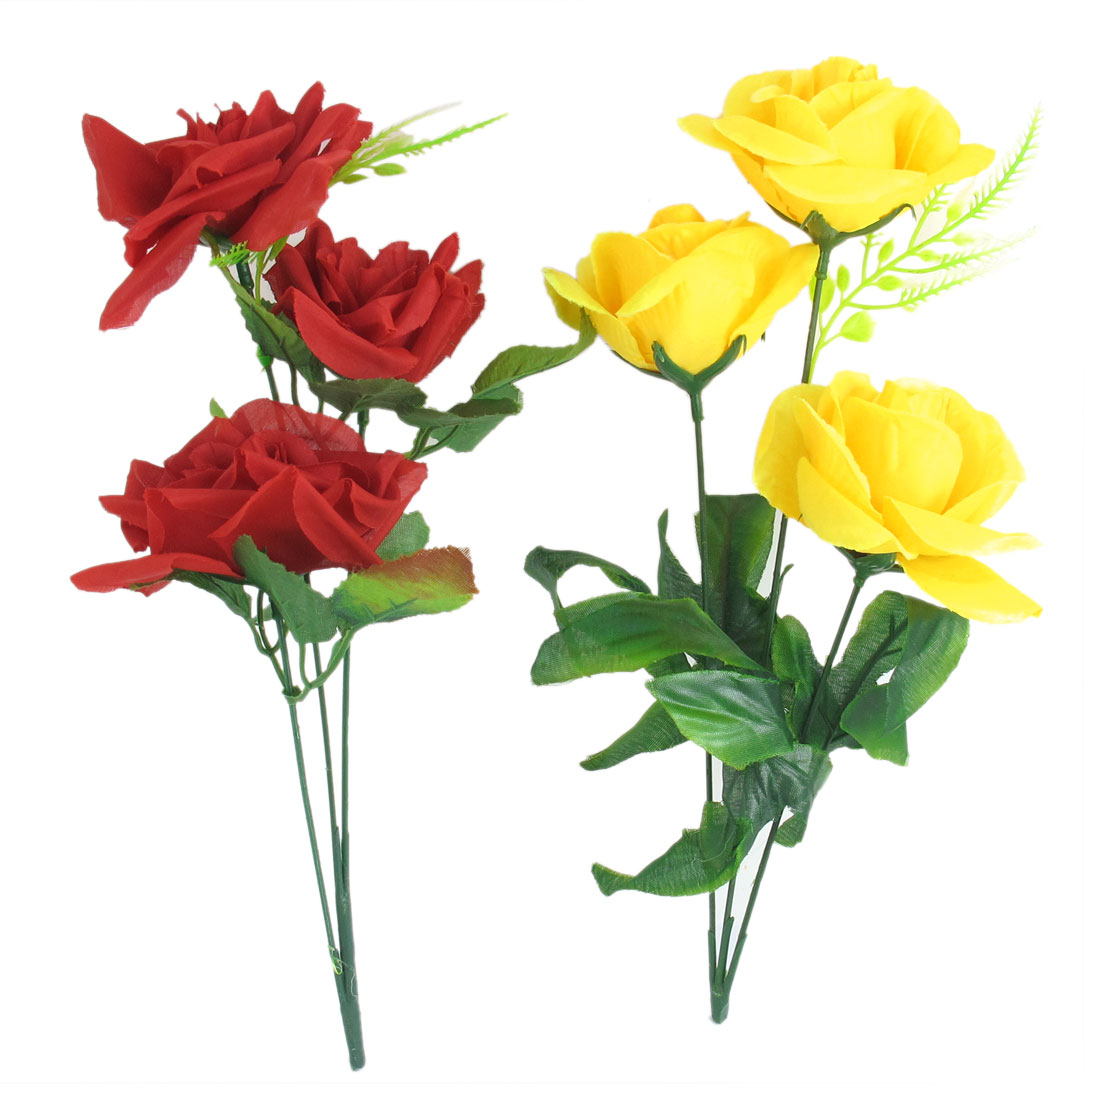 2 Pcs Wedding Emulational Fabric Red Yellow Flower Bouquet 30cm High